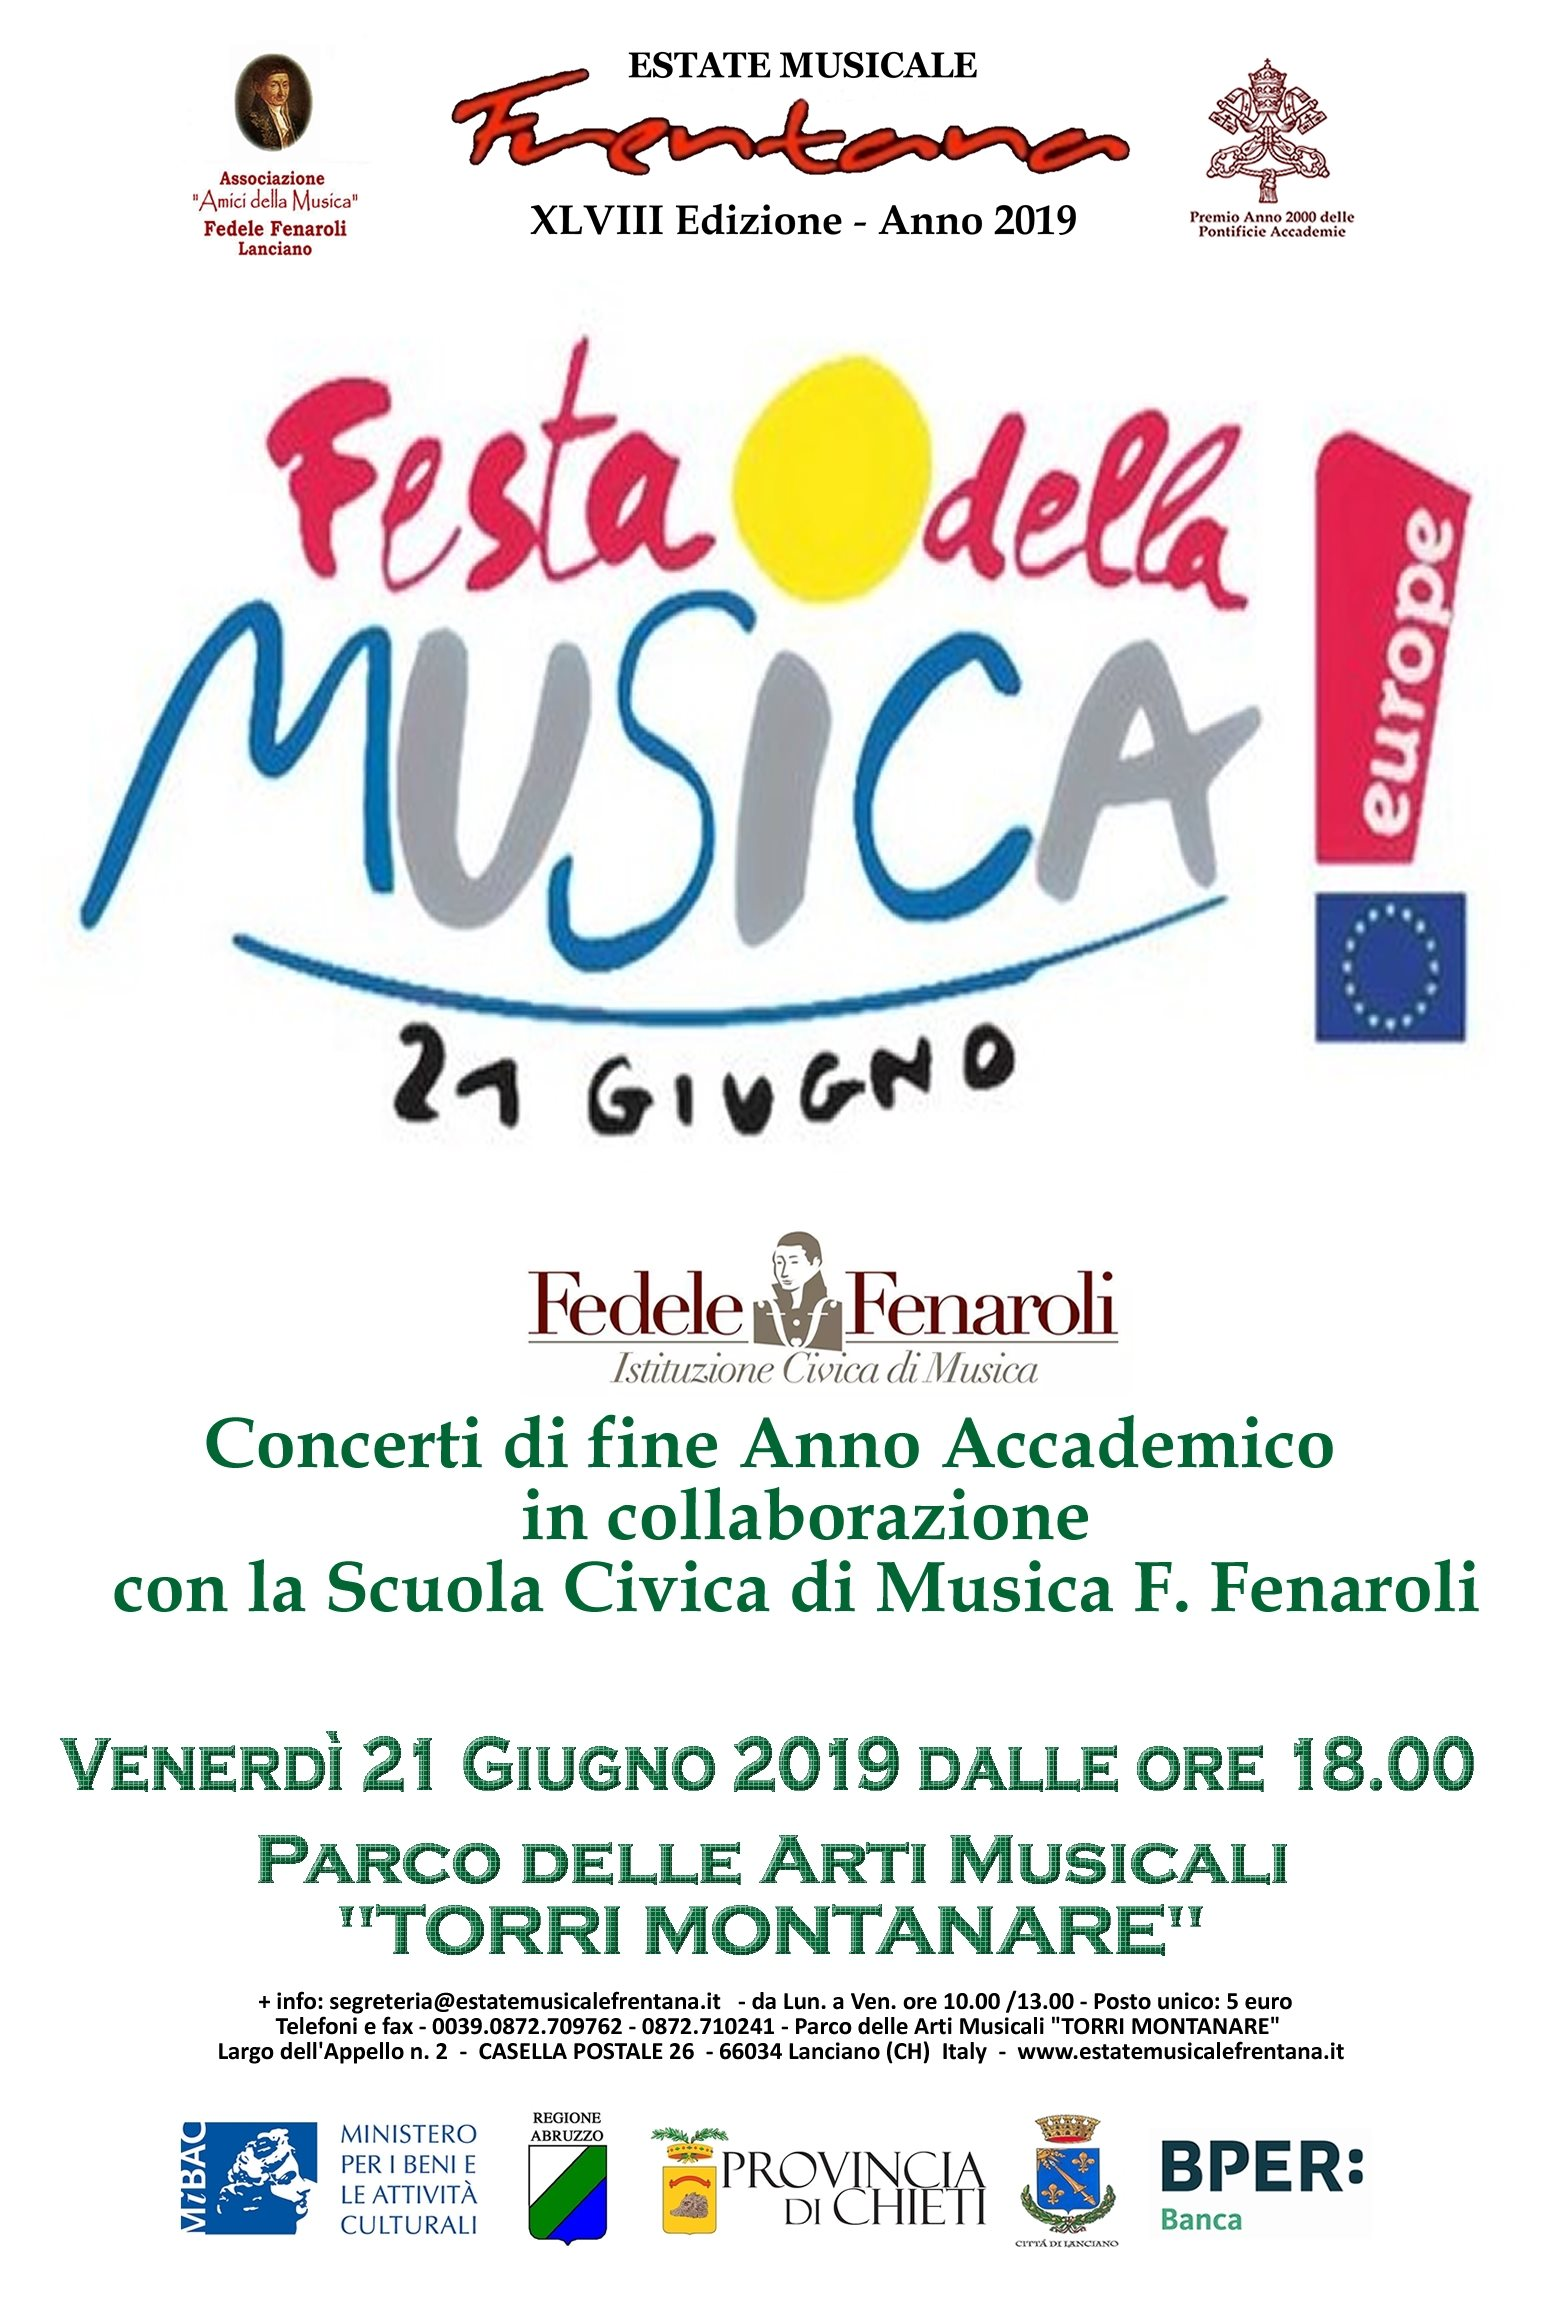 Calendario Ecolan Lanciano 2020.Estate Musicale Frentana